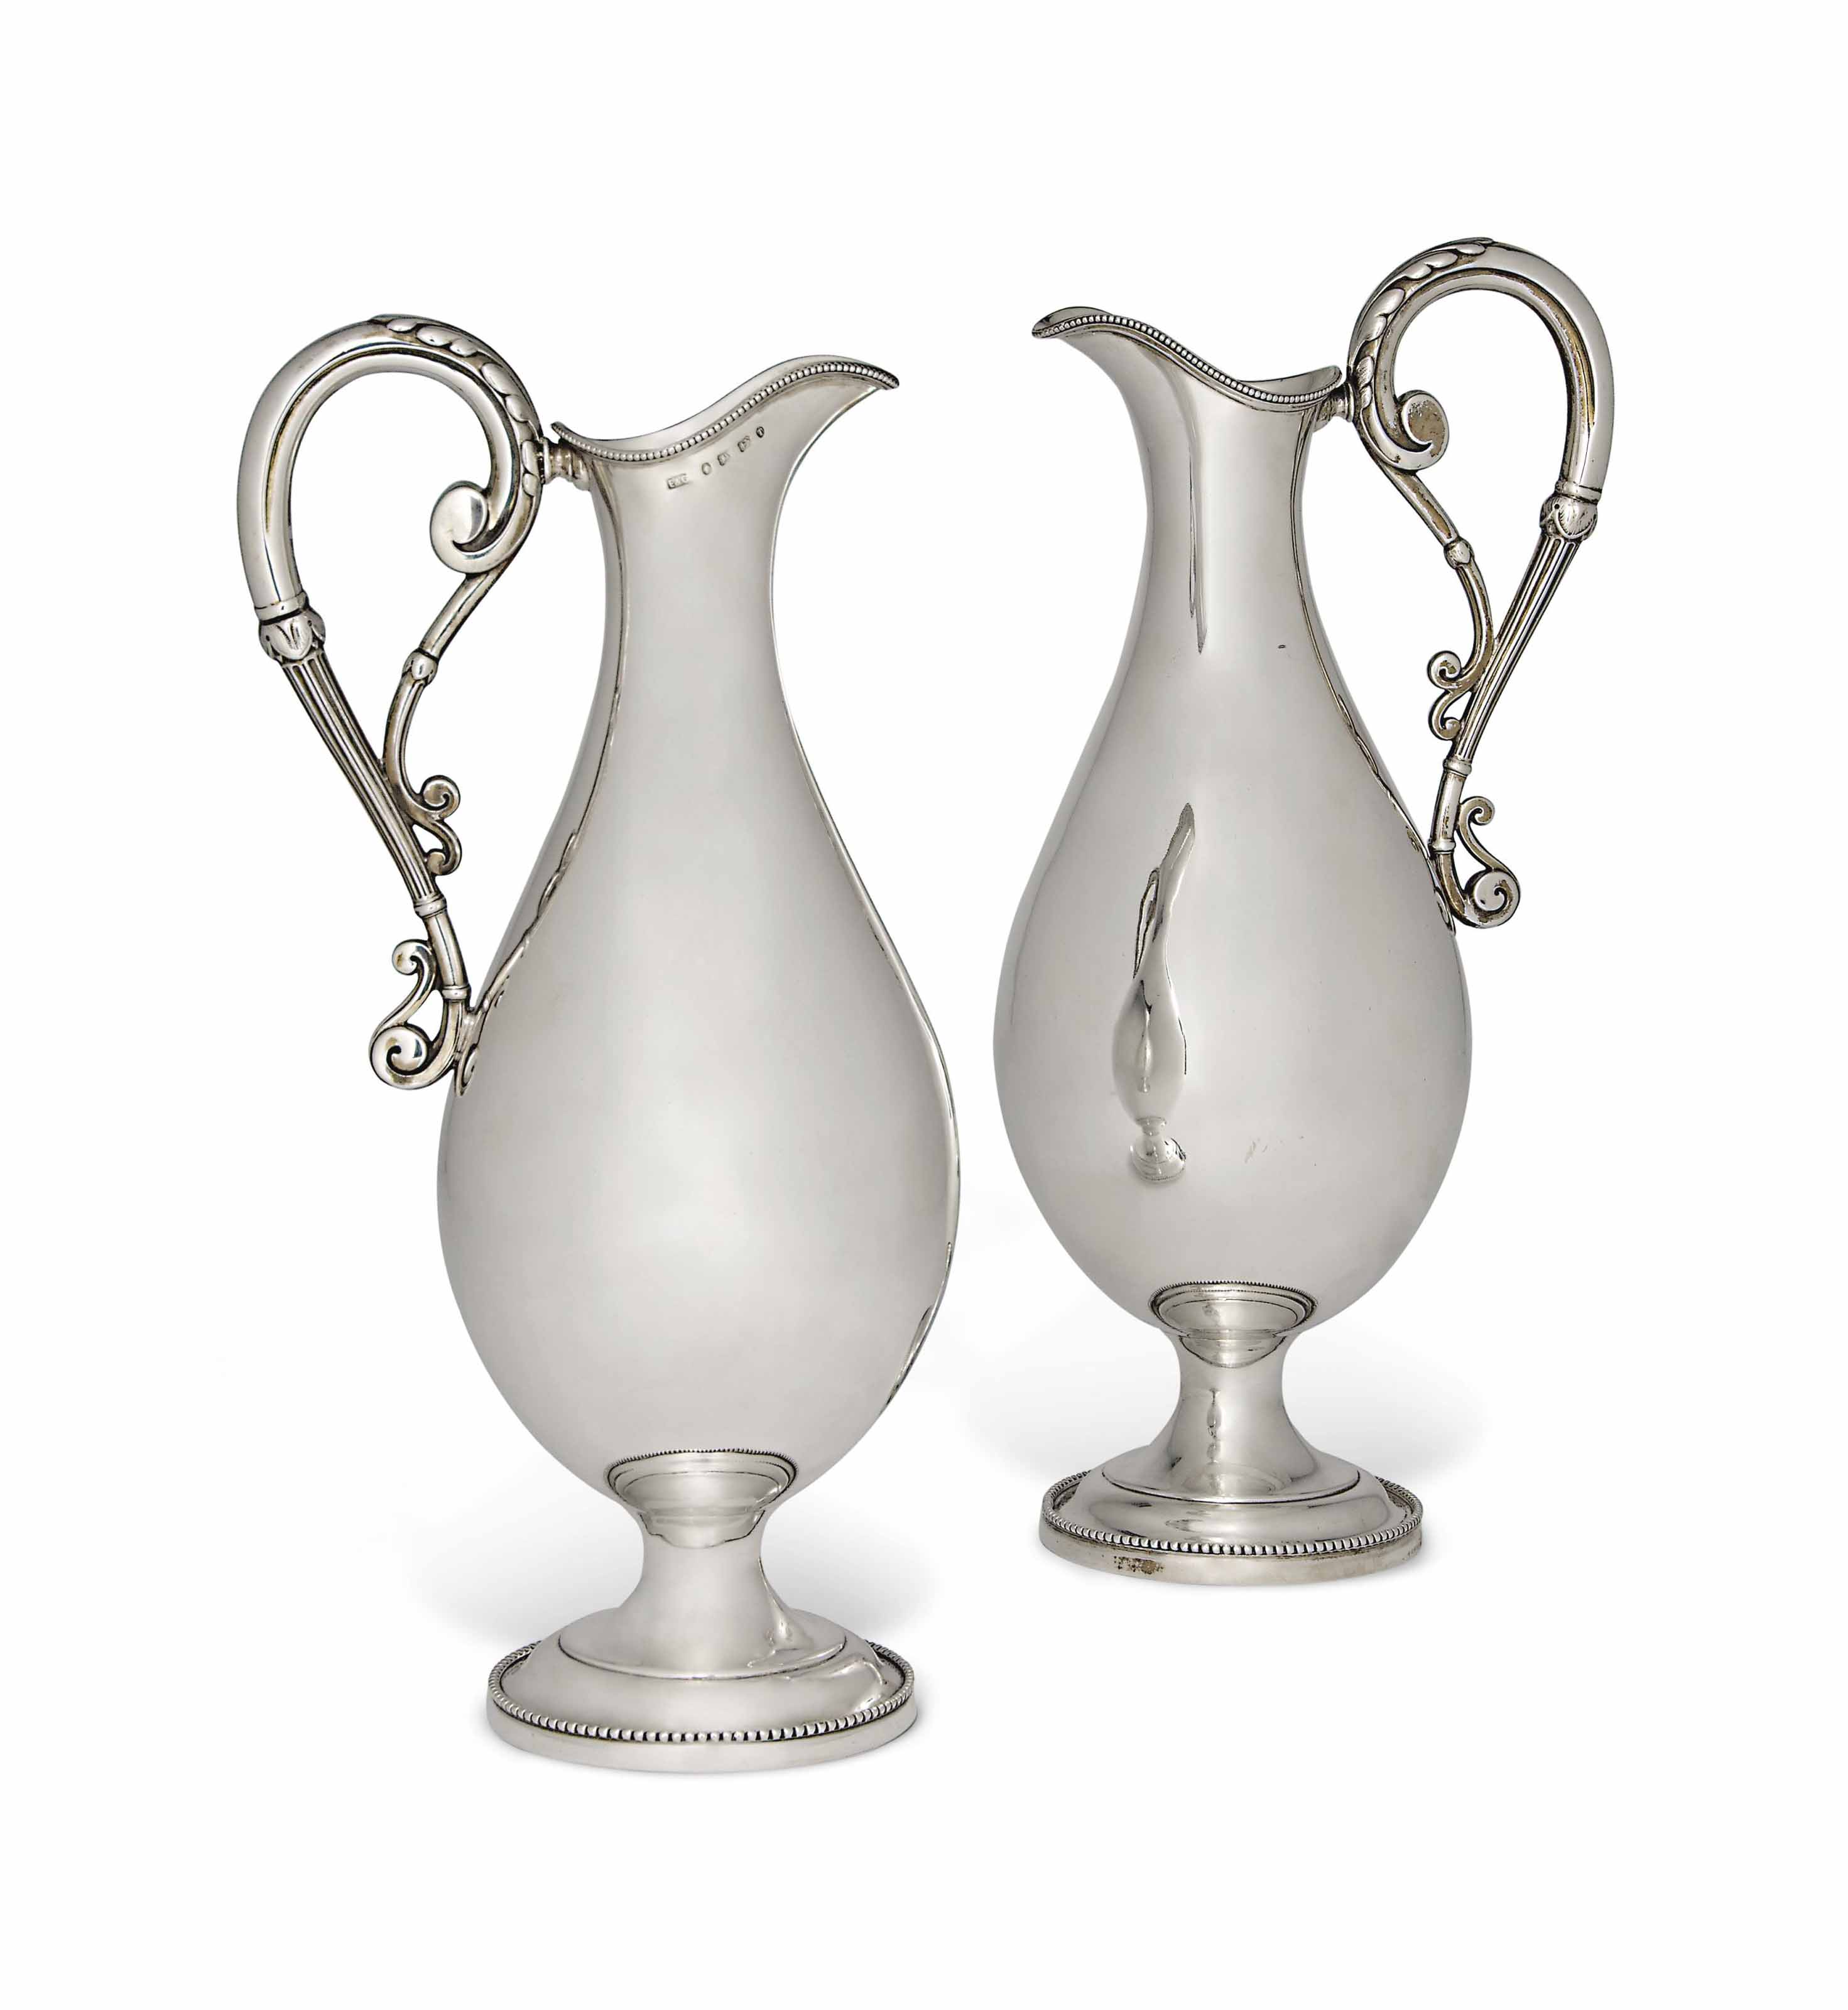 A MATCHED PAIR OF VICTORIAN SILVER CLARET JUGS